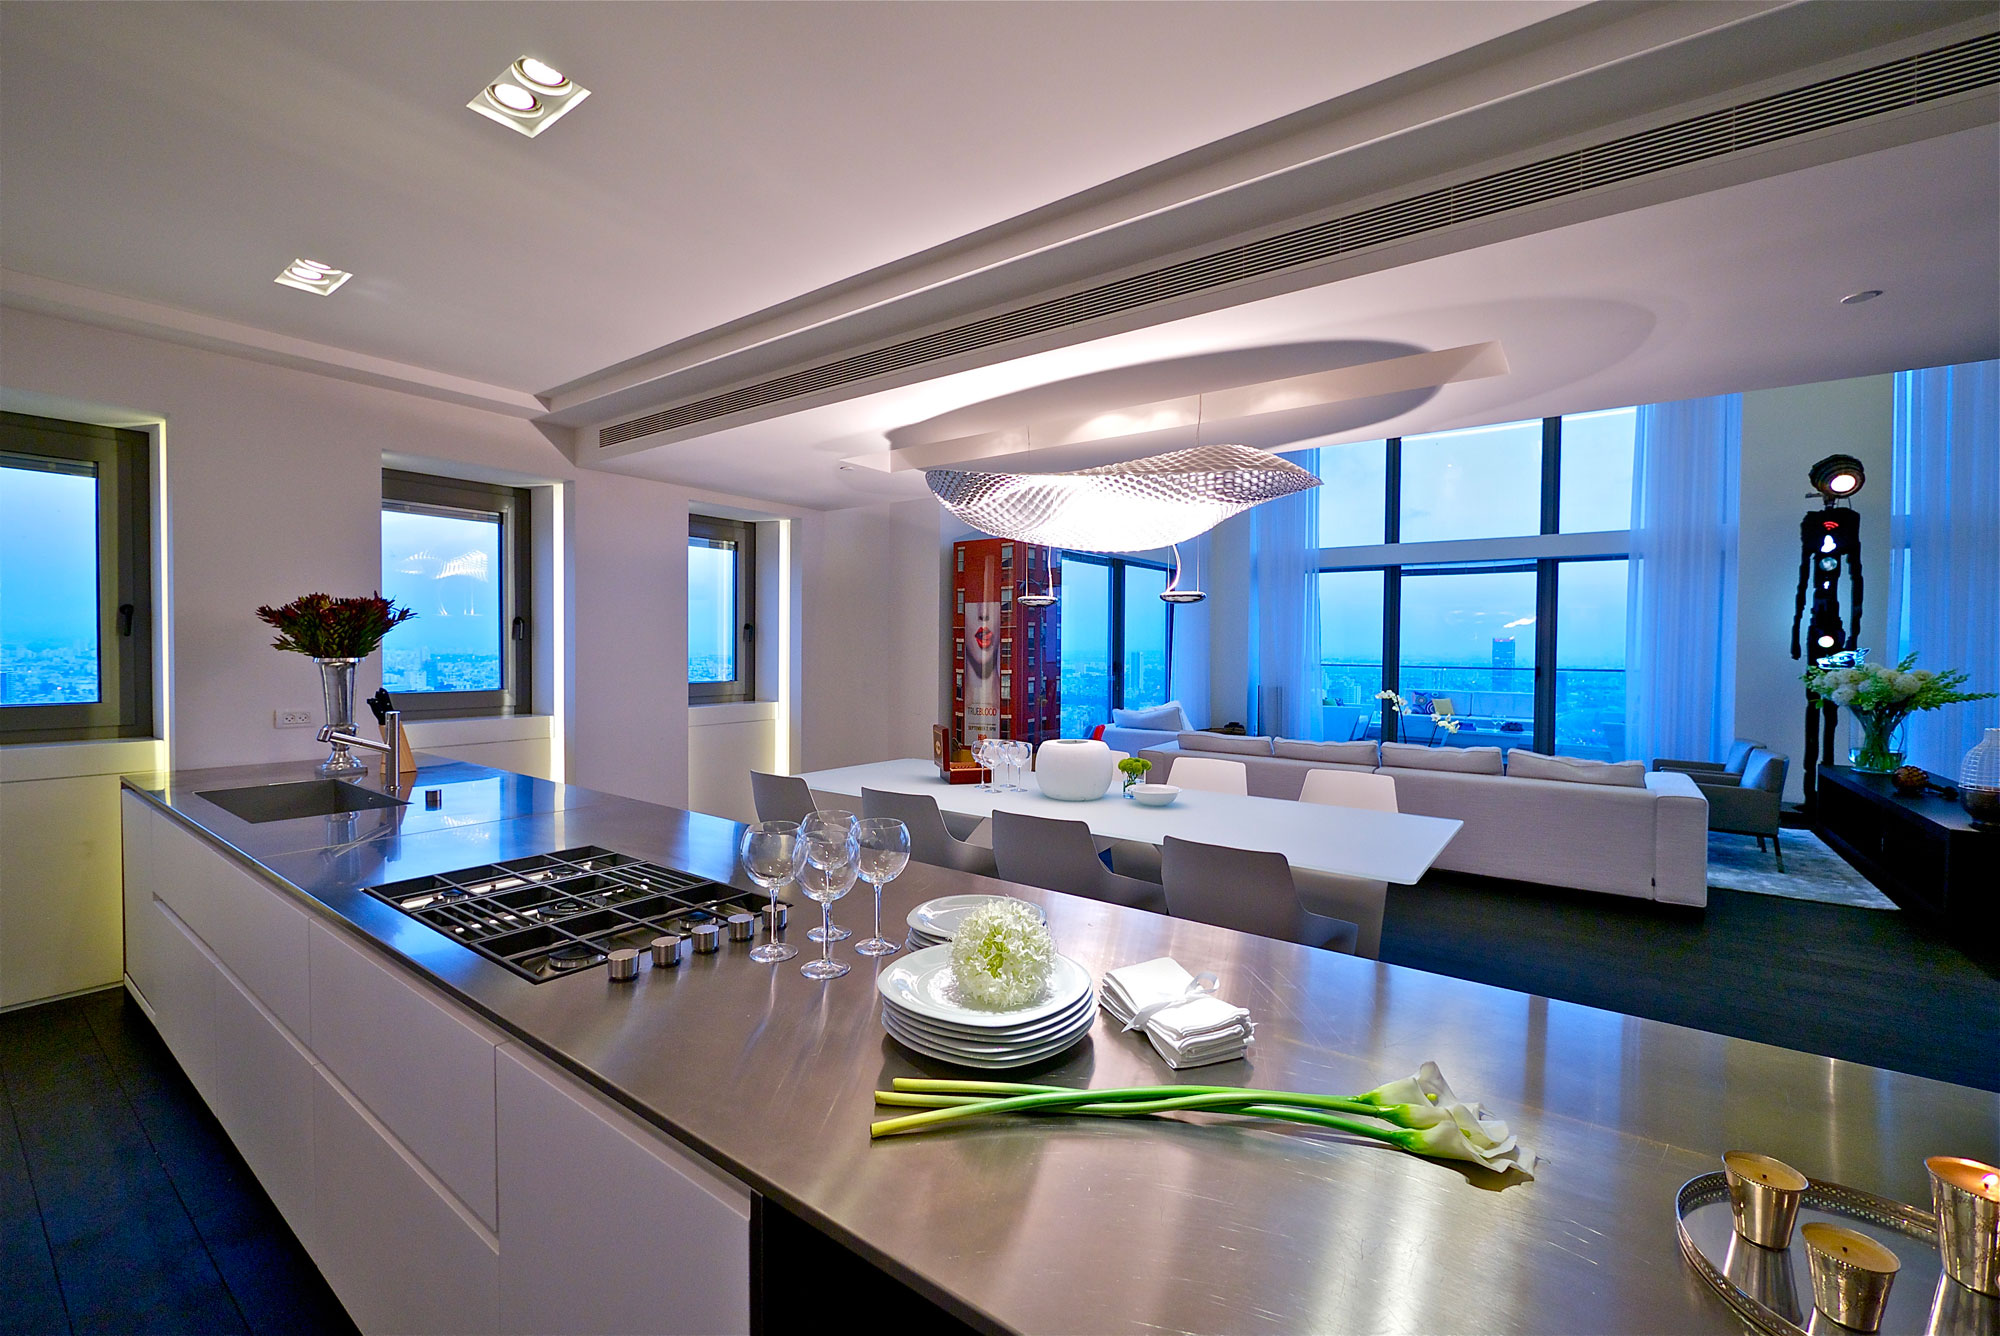 interior kitchen the home tel aviv design | Stunning Penthouse With Private Rooftop Swimming Pool ...